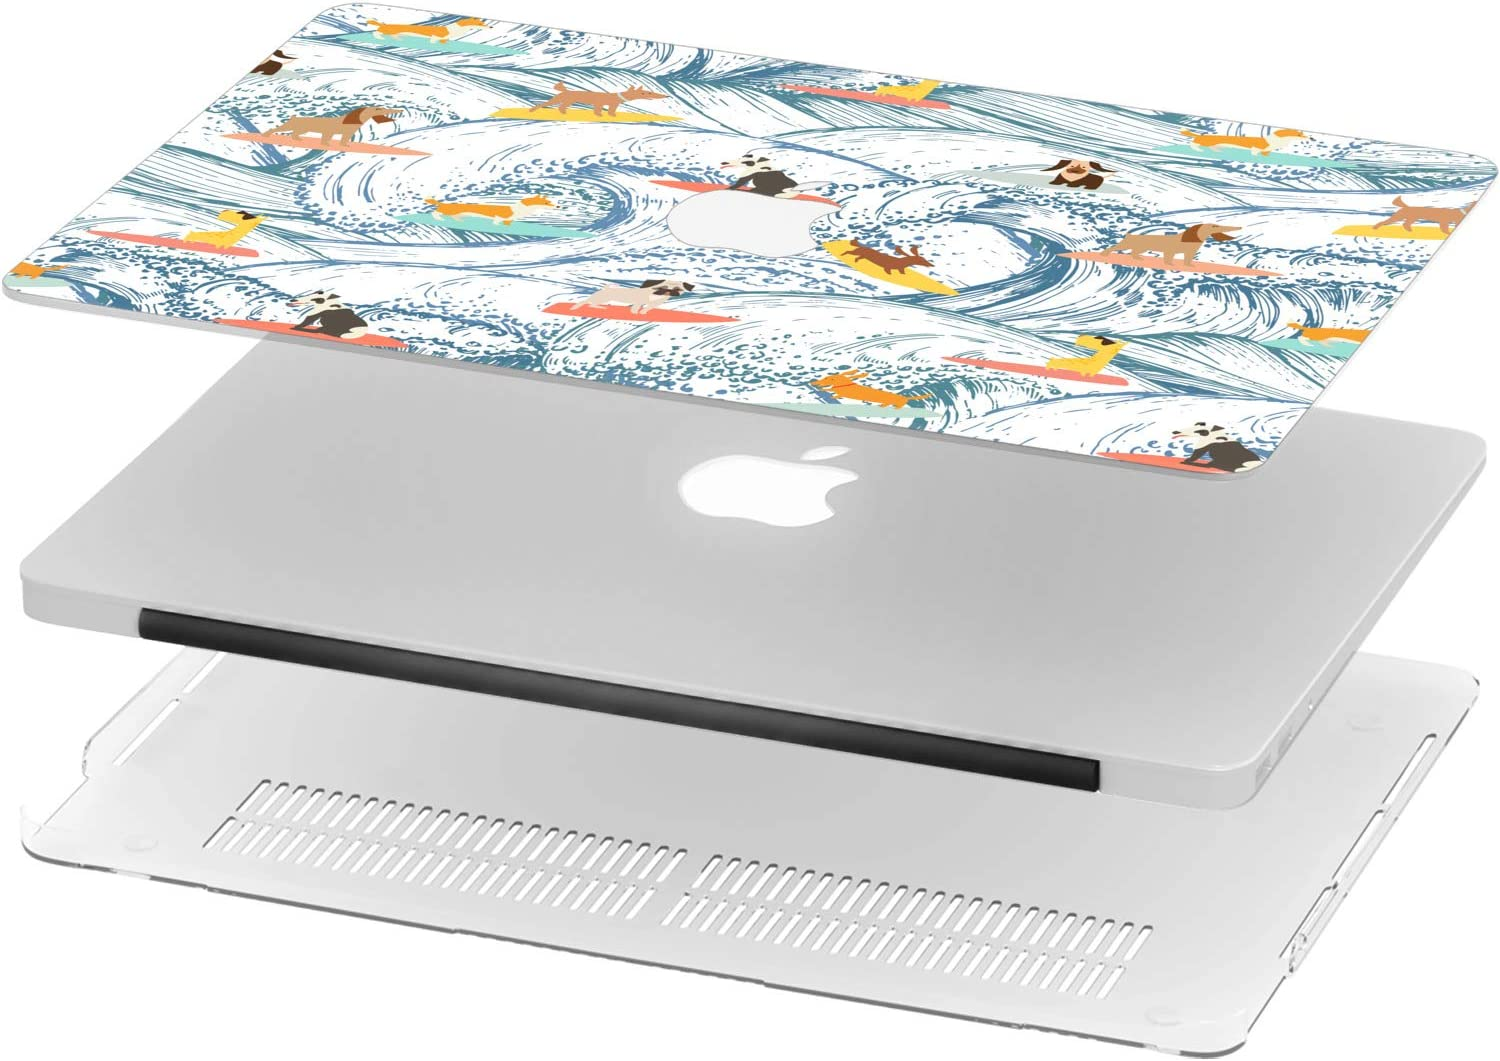 Mertak Hard Case for Apple MacBook Pro 16 Air 13 inch Mac 15 Retina 12 11 2020 2019 2018 2017 Funny Clear Dino Design Cute Cartoon Protective Laptop Dinosaurs Pattern Touch Bar Animal Print Colorful